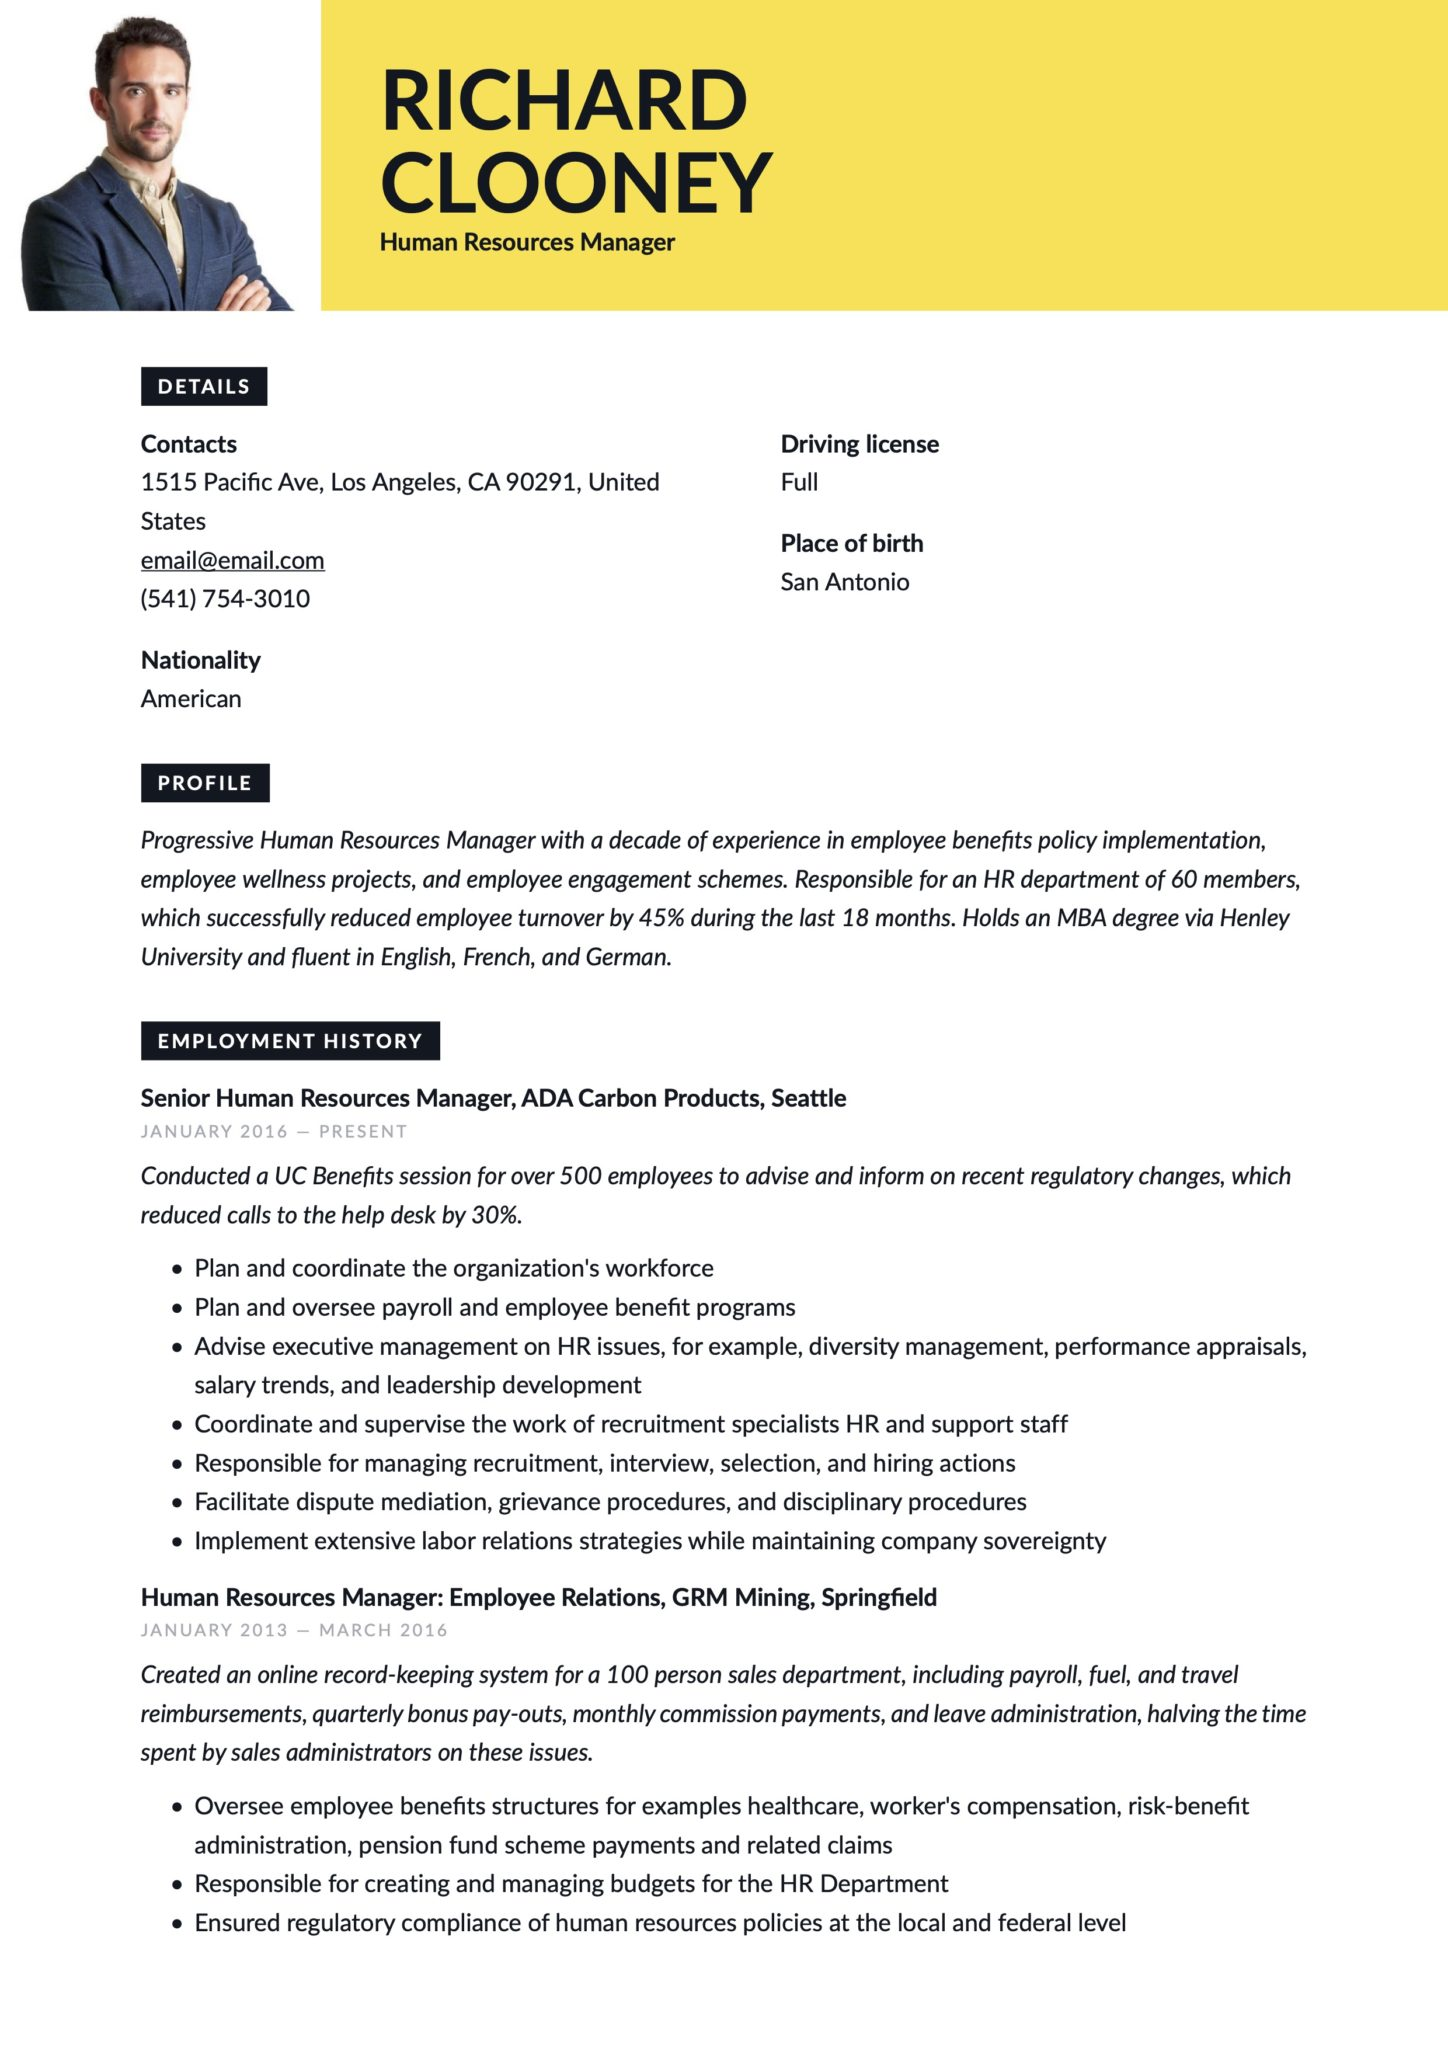 17 human resources manager resumes  u0026 guide